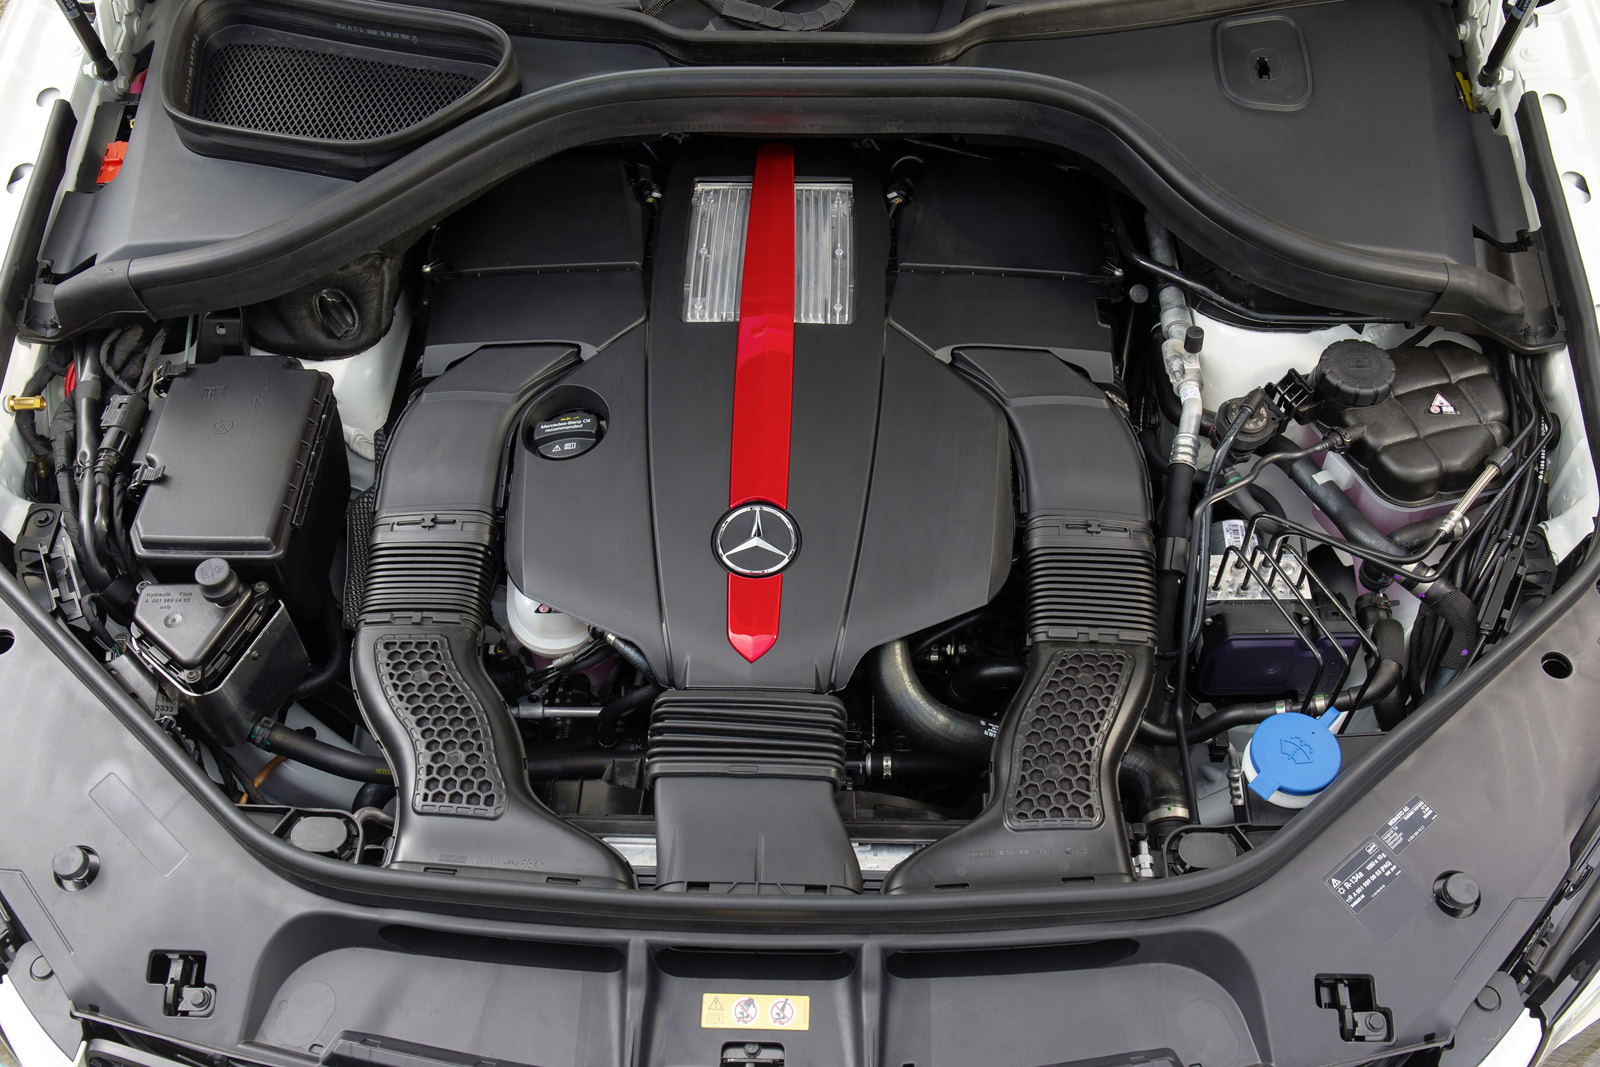 http://www.autoguide.com/blog/wp-content/gallery/2016-mercedes-benz-gle-450-amg-4matic/2016-Mercedes-Benz-GLE-450-AMG-4.jpg